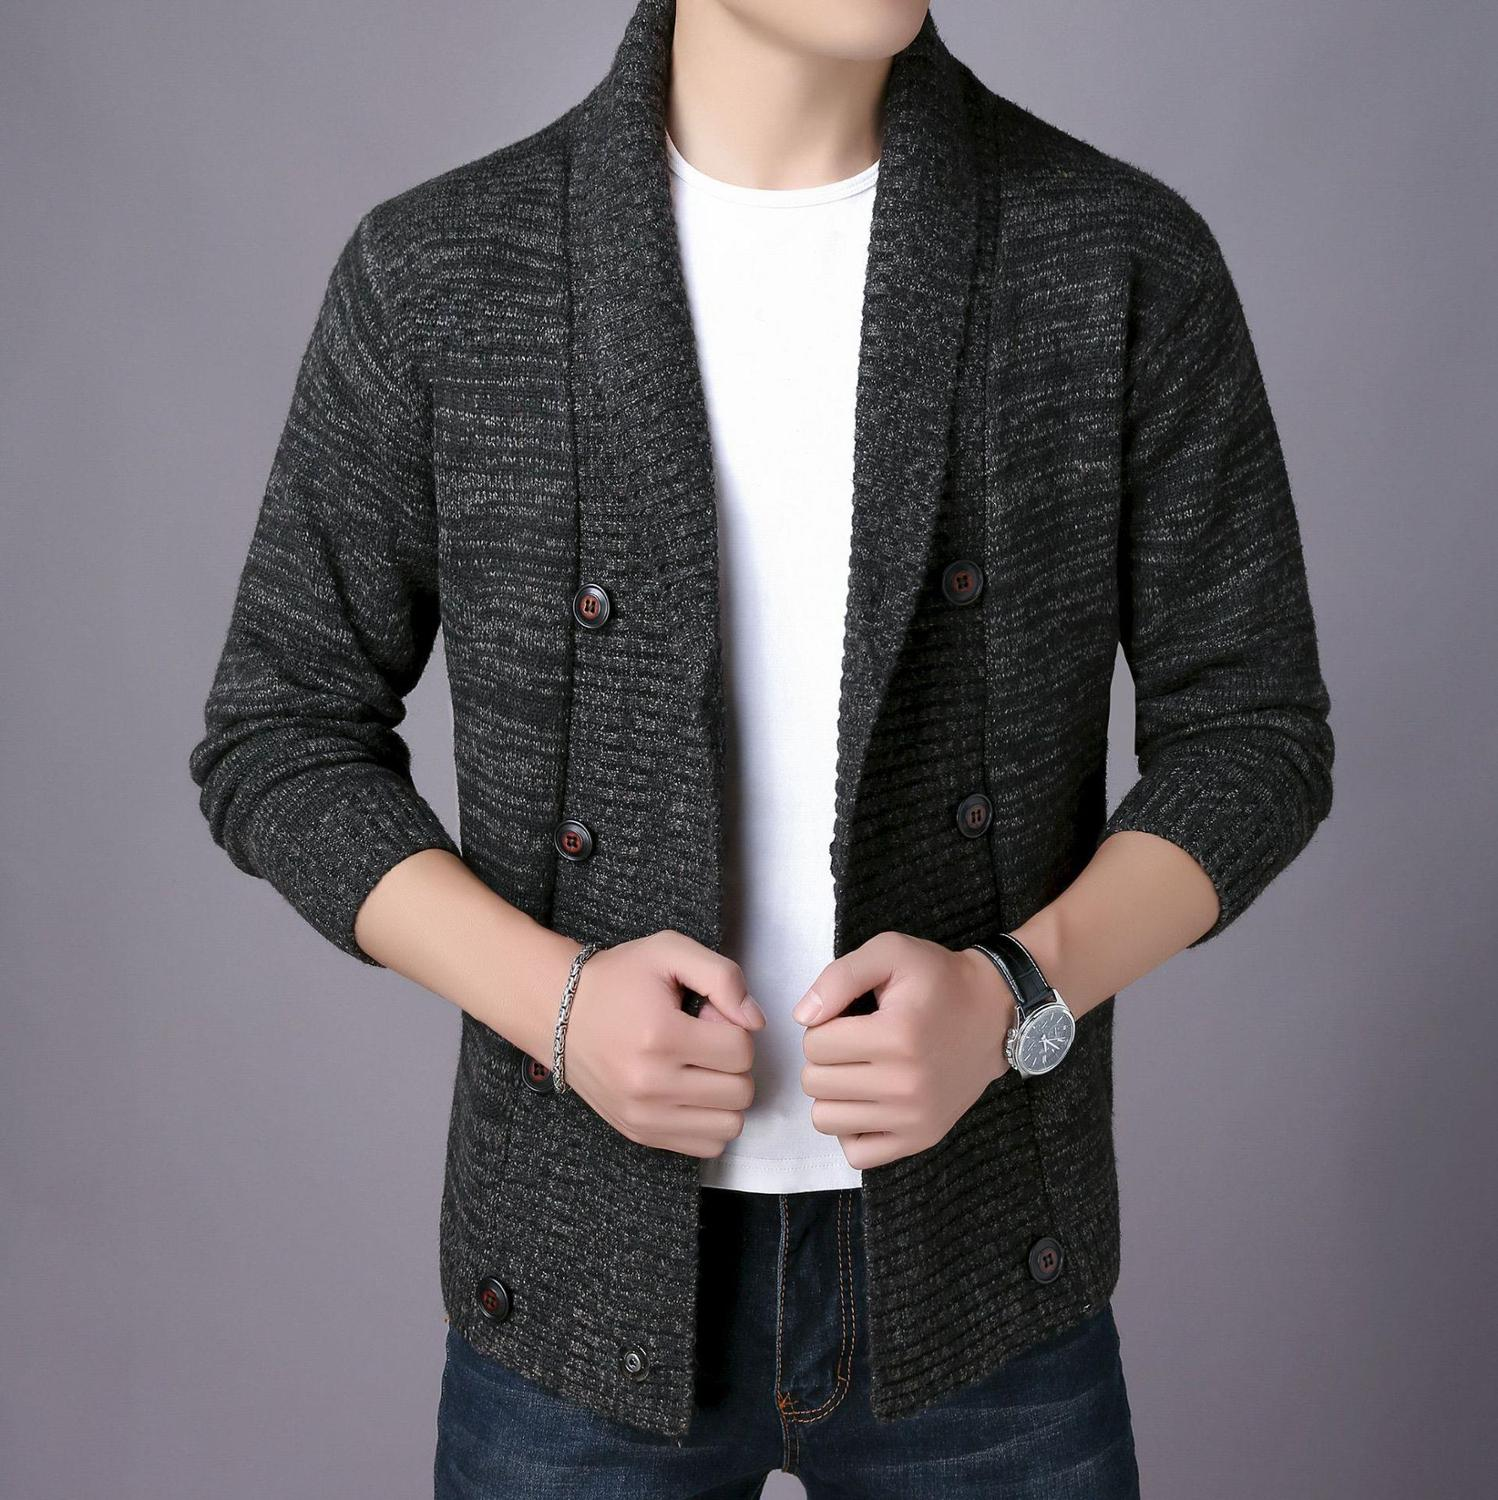 2020 New Autumn And Winter Korean Men's Double-breasted Sweater Fashion Casual Youth Double-breasted Cardigan Sweater